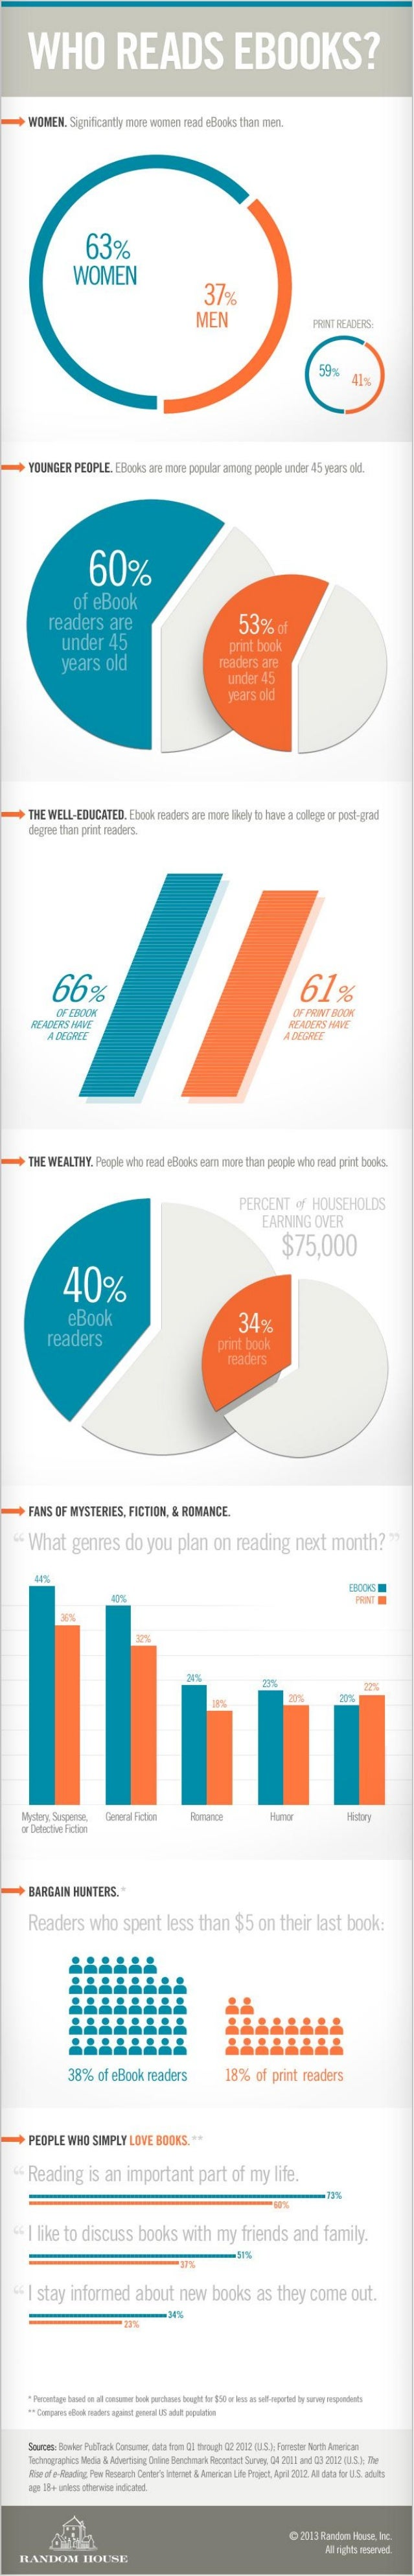 Who Reads eBooks? [Infographic]